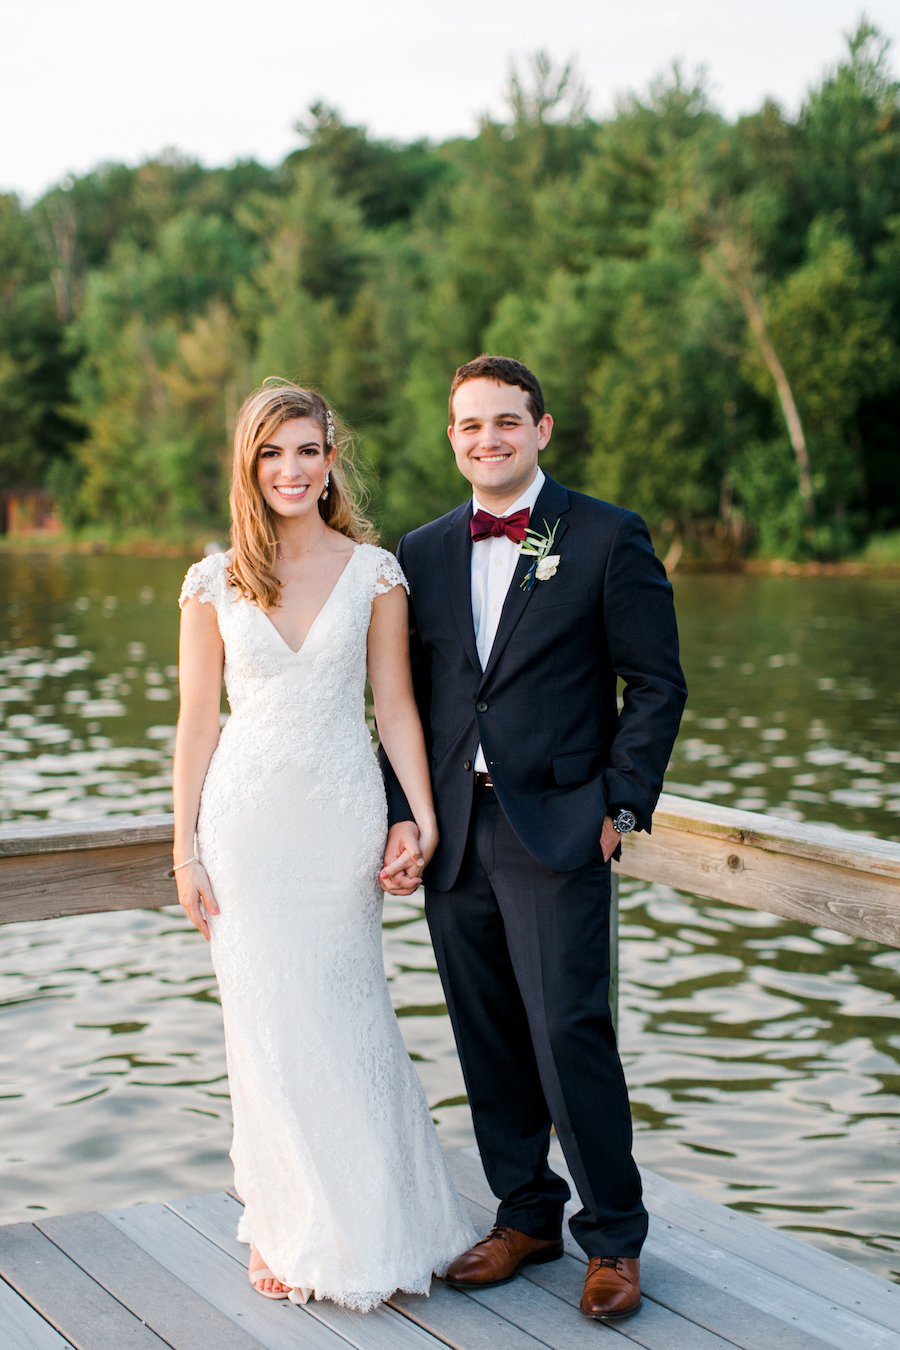 A couple smiling at the camera at their lakeside wedding